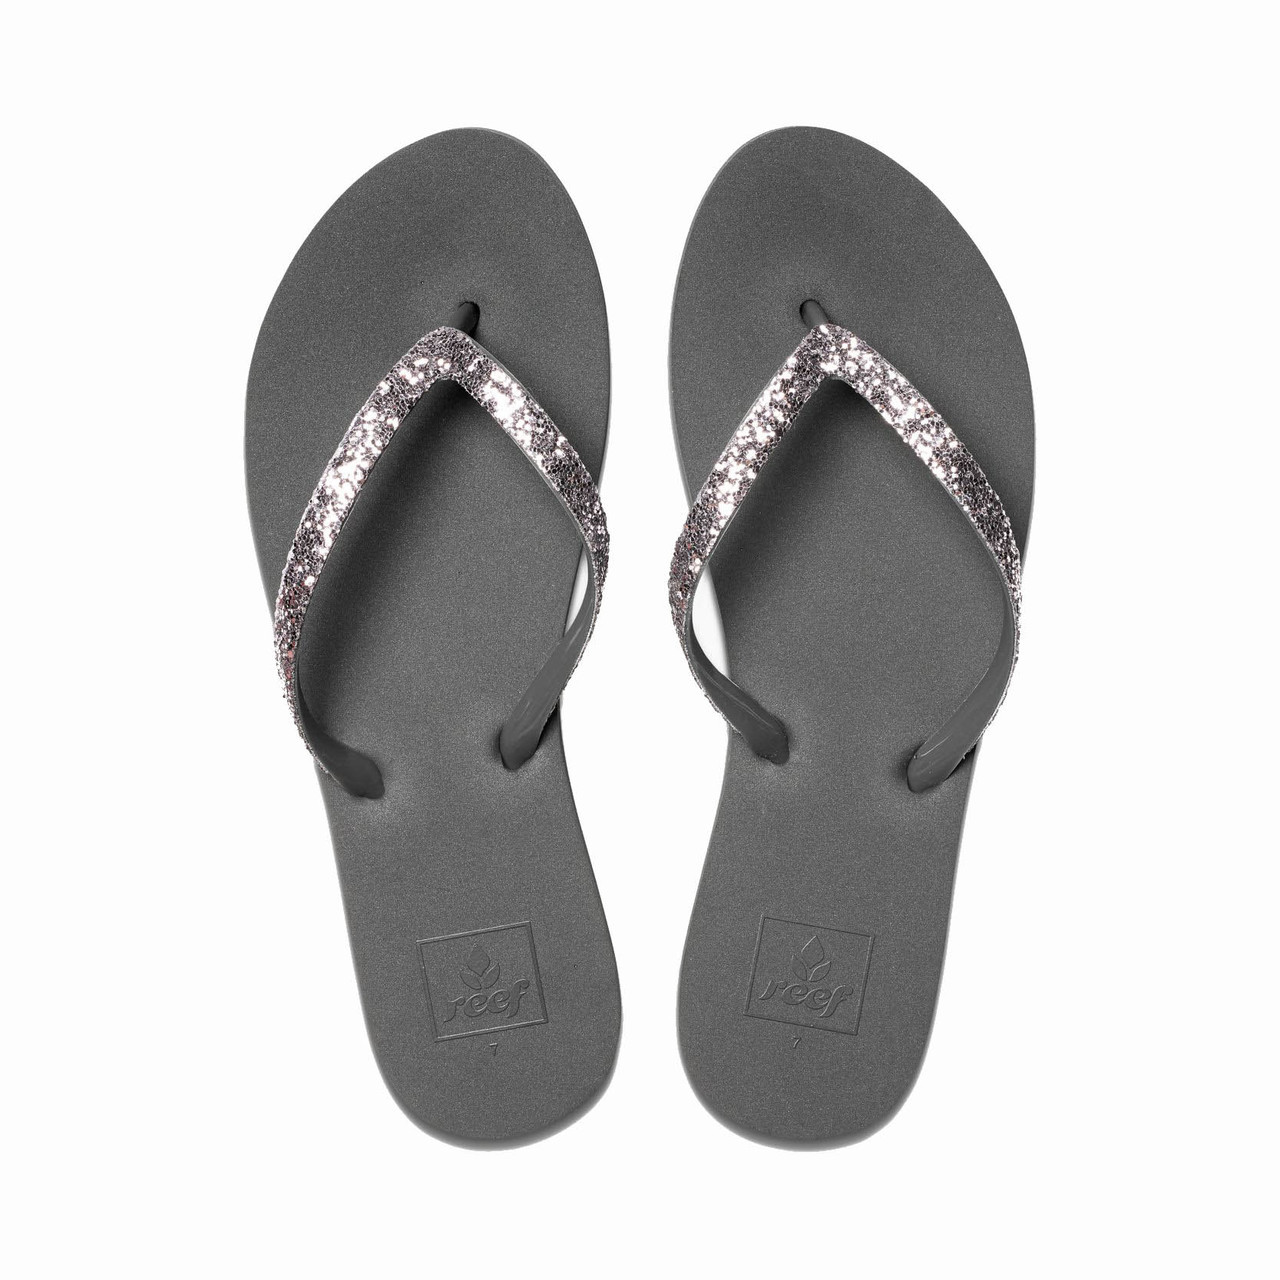 799b2674dbe4 Reef Women s Flip Flops - Stargazer - Shadow - Surf and Dirt